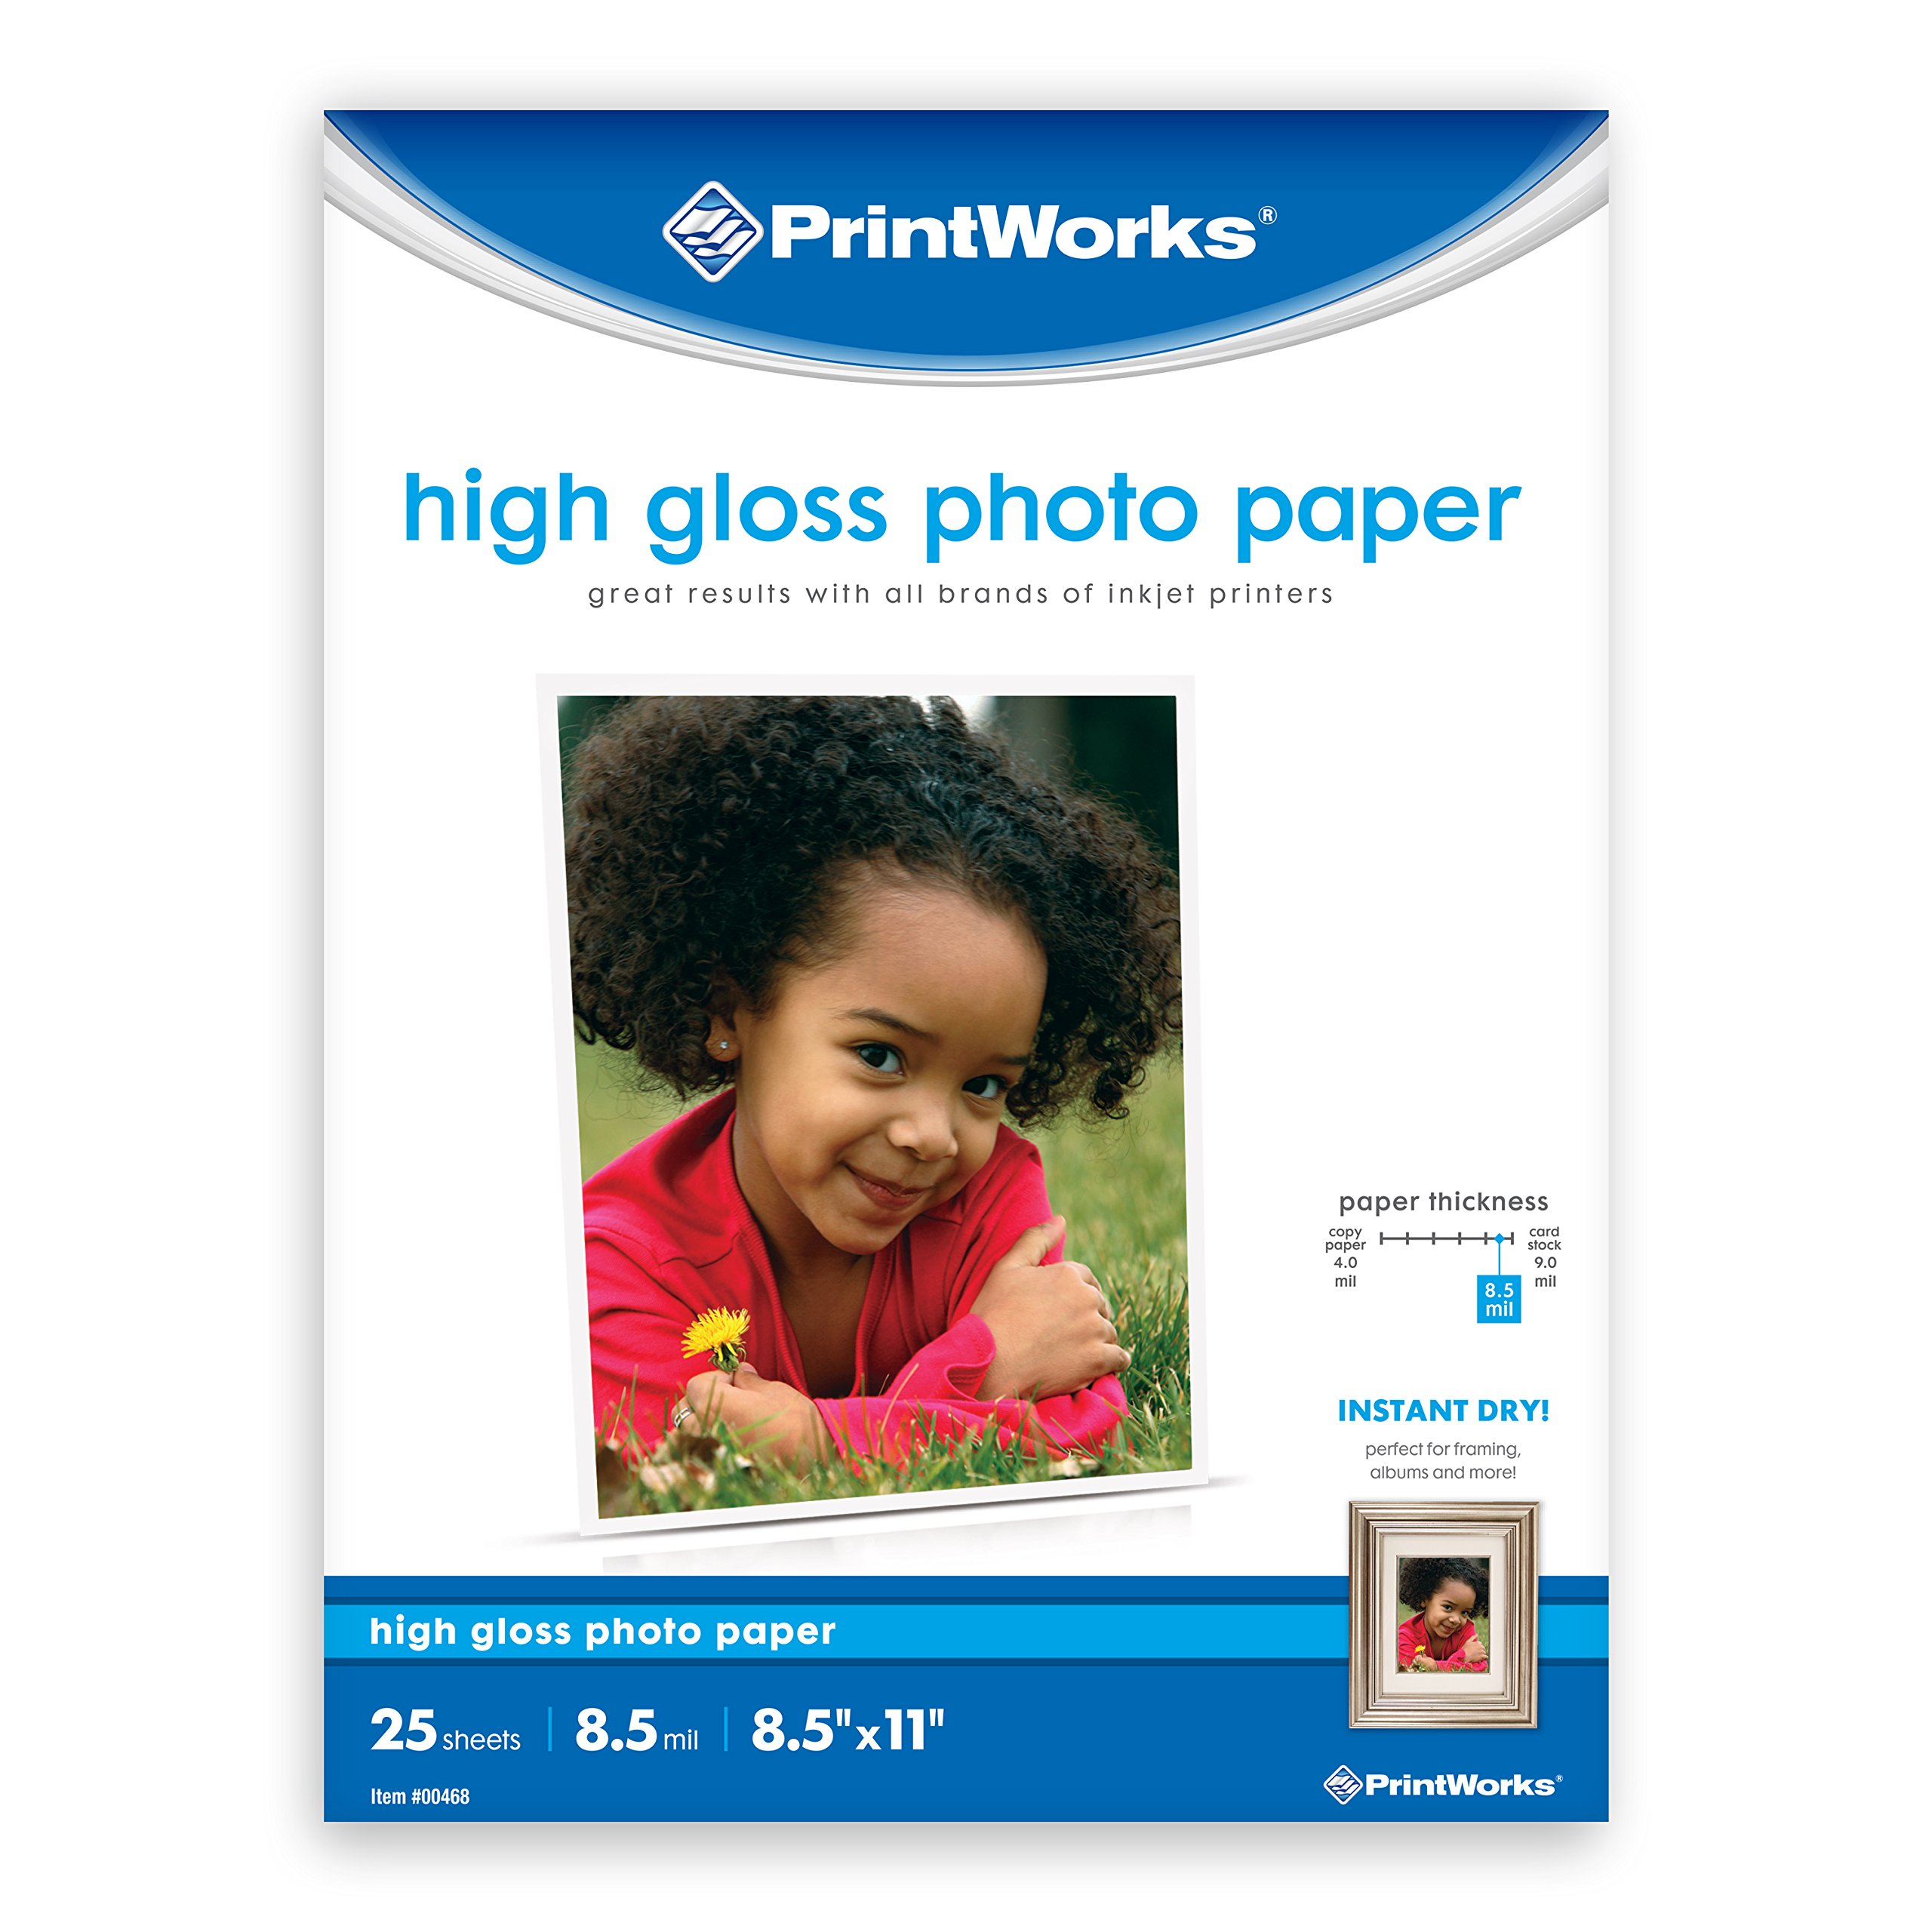 """Printworks High Gloss Photo Paper for Inkjet Printers, 8.5 mil, 25 Sheets, 8.5"""" x 11"""" (00468)"""